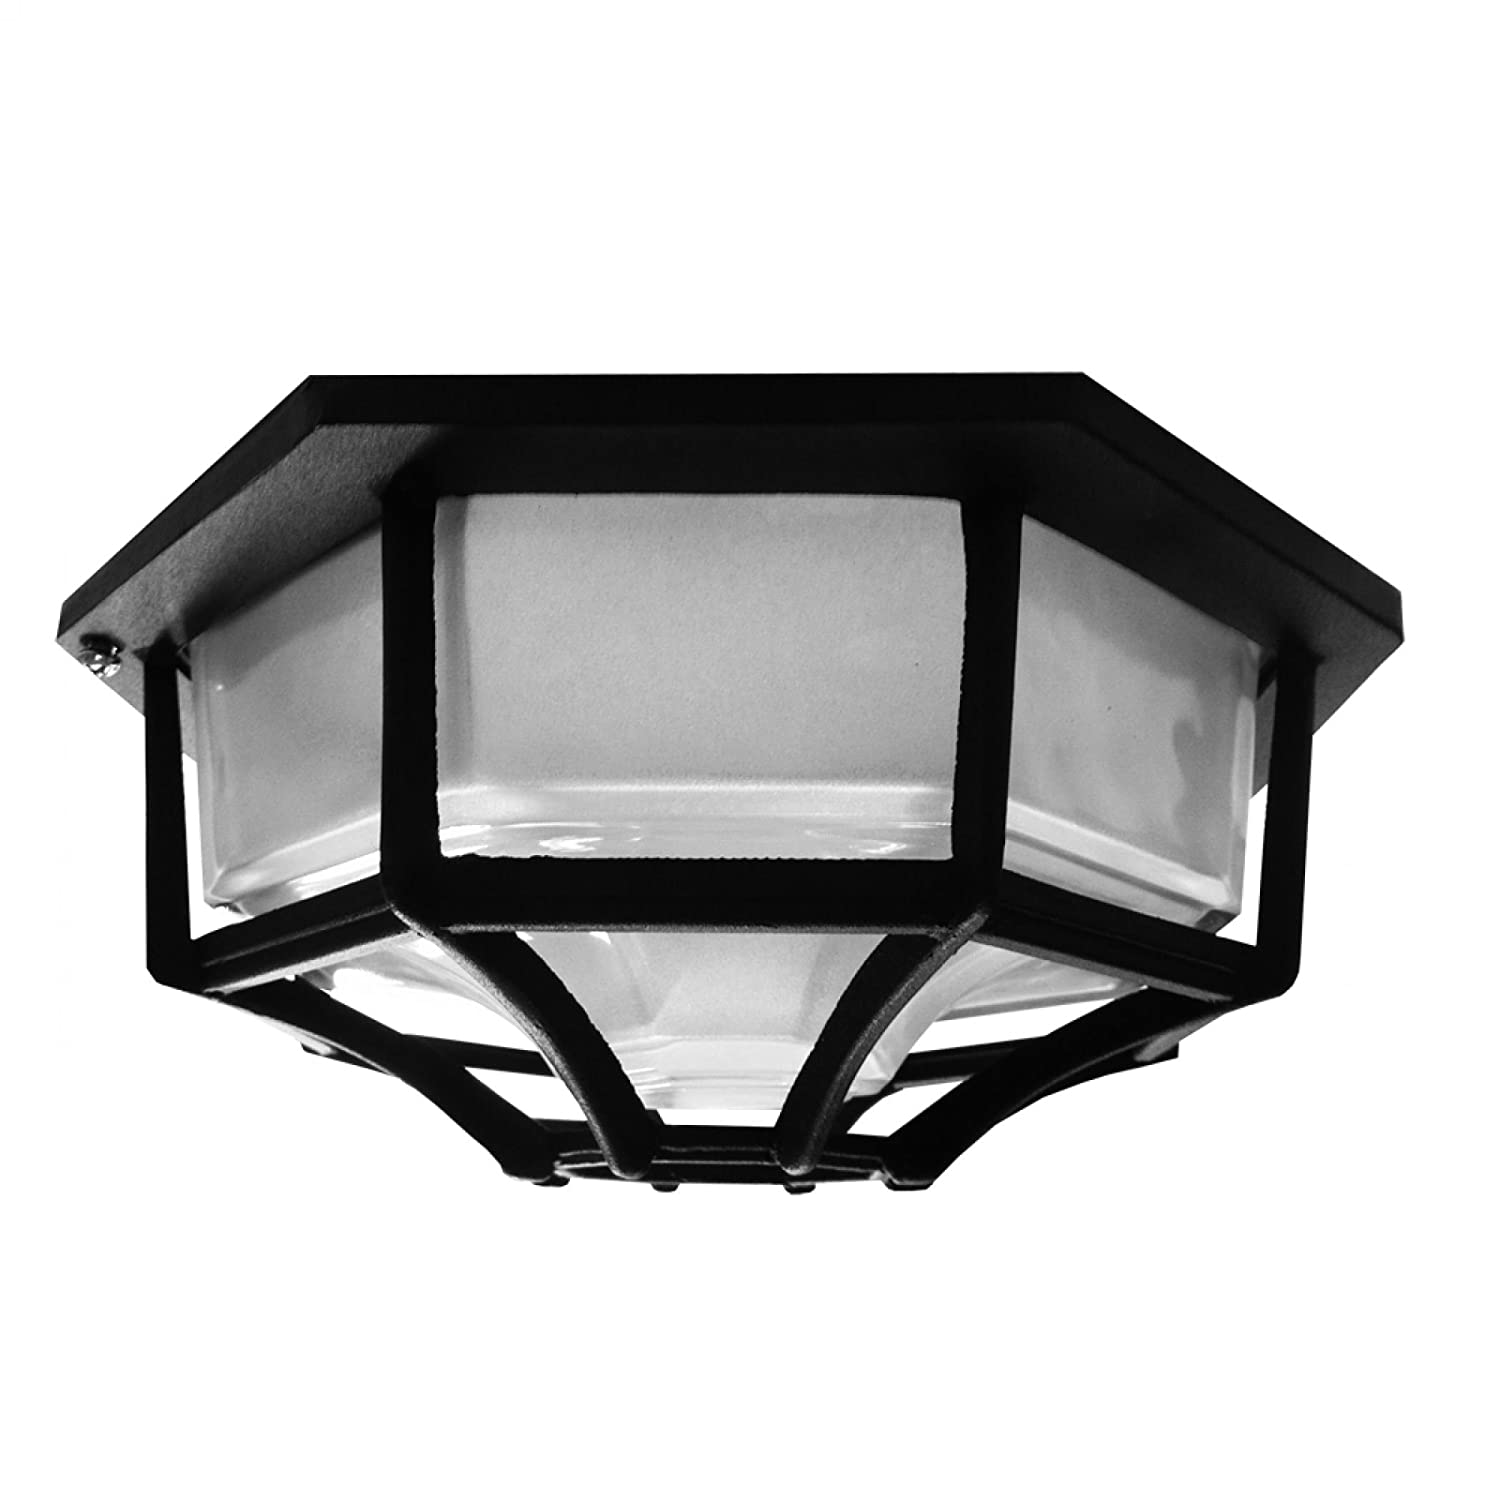 Searchlight 2942BK Hexagonal 6 sided Black IP44 Flush Porch/Outdoor Wall or Ceiling Lantern Light/Lighting